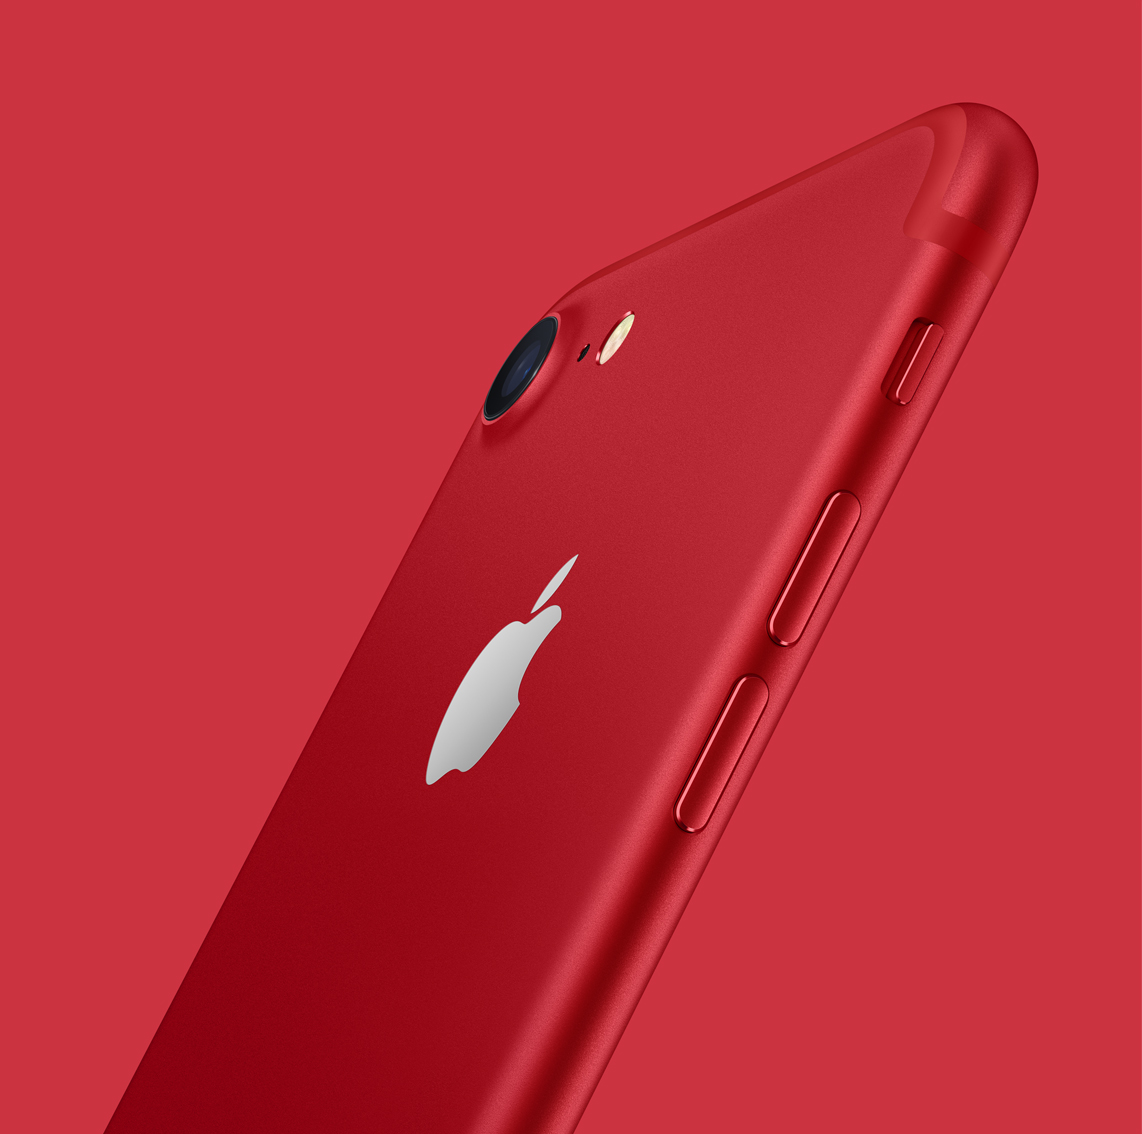 product_red_onred